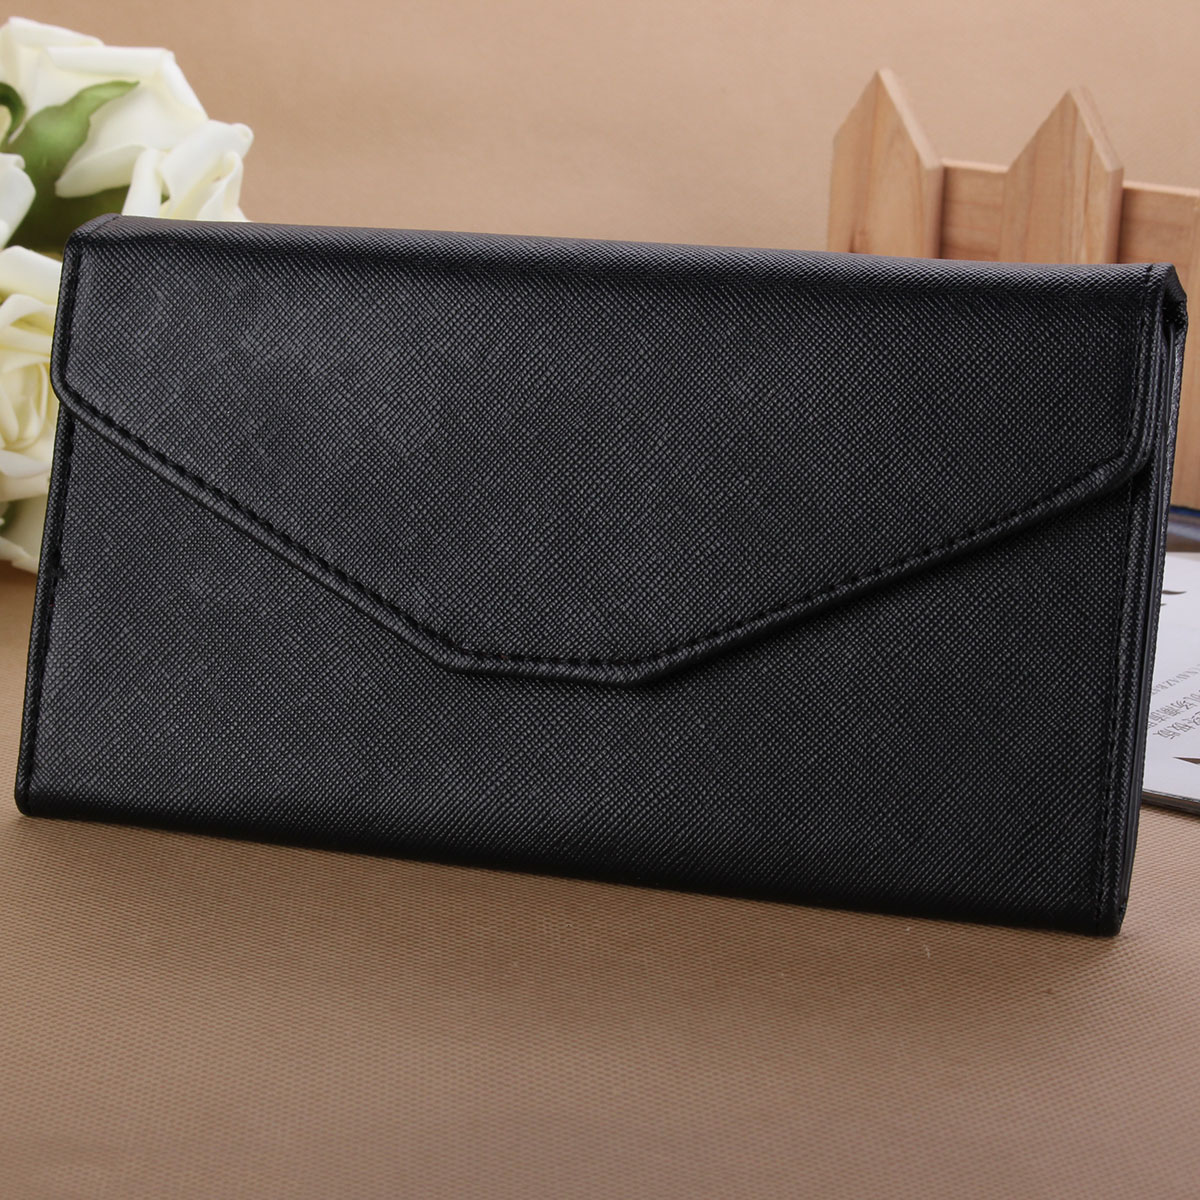 Women Clutch Long Purse Lady Leather Wallet Card Holder Handbag Phone Coin Bag